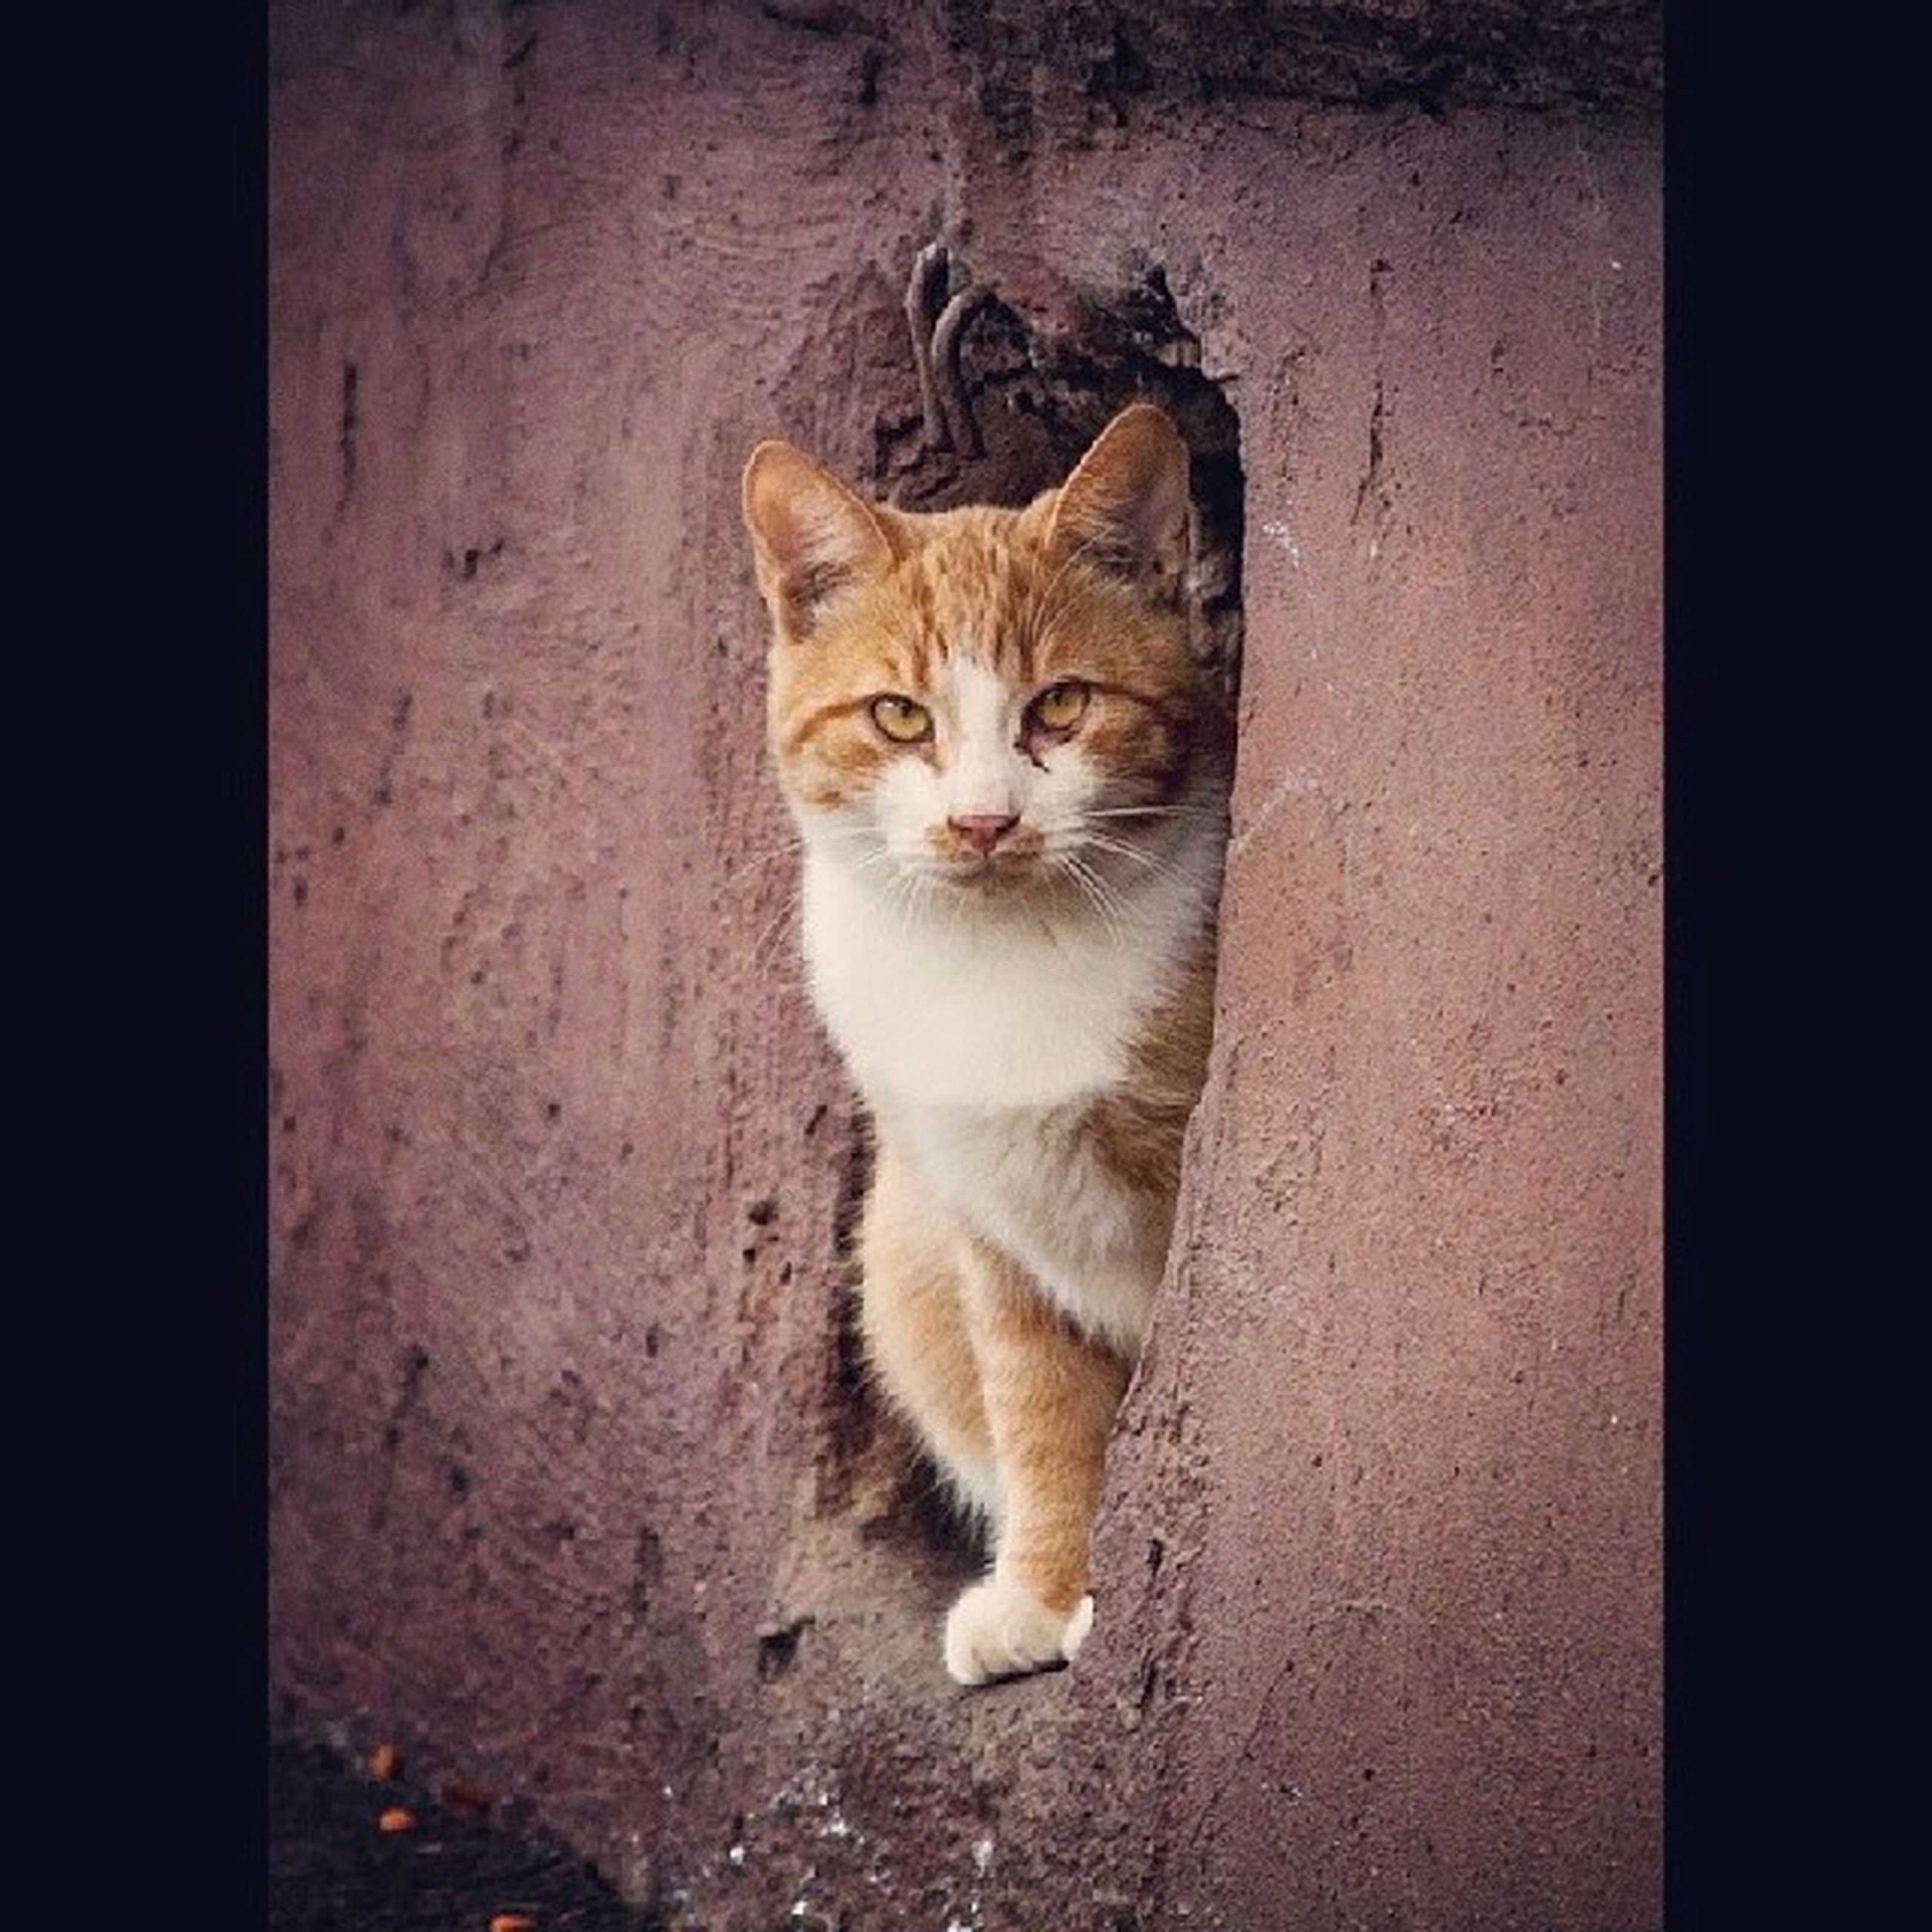 domestic cat, cat, pets, one animal, domestic animals, feline, animal themes, mammal, whisker, portrait, looking at camera, sitting, staring, alertness, wall - building feature, front view, no people, full length, close-up